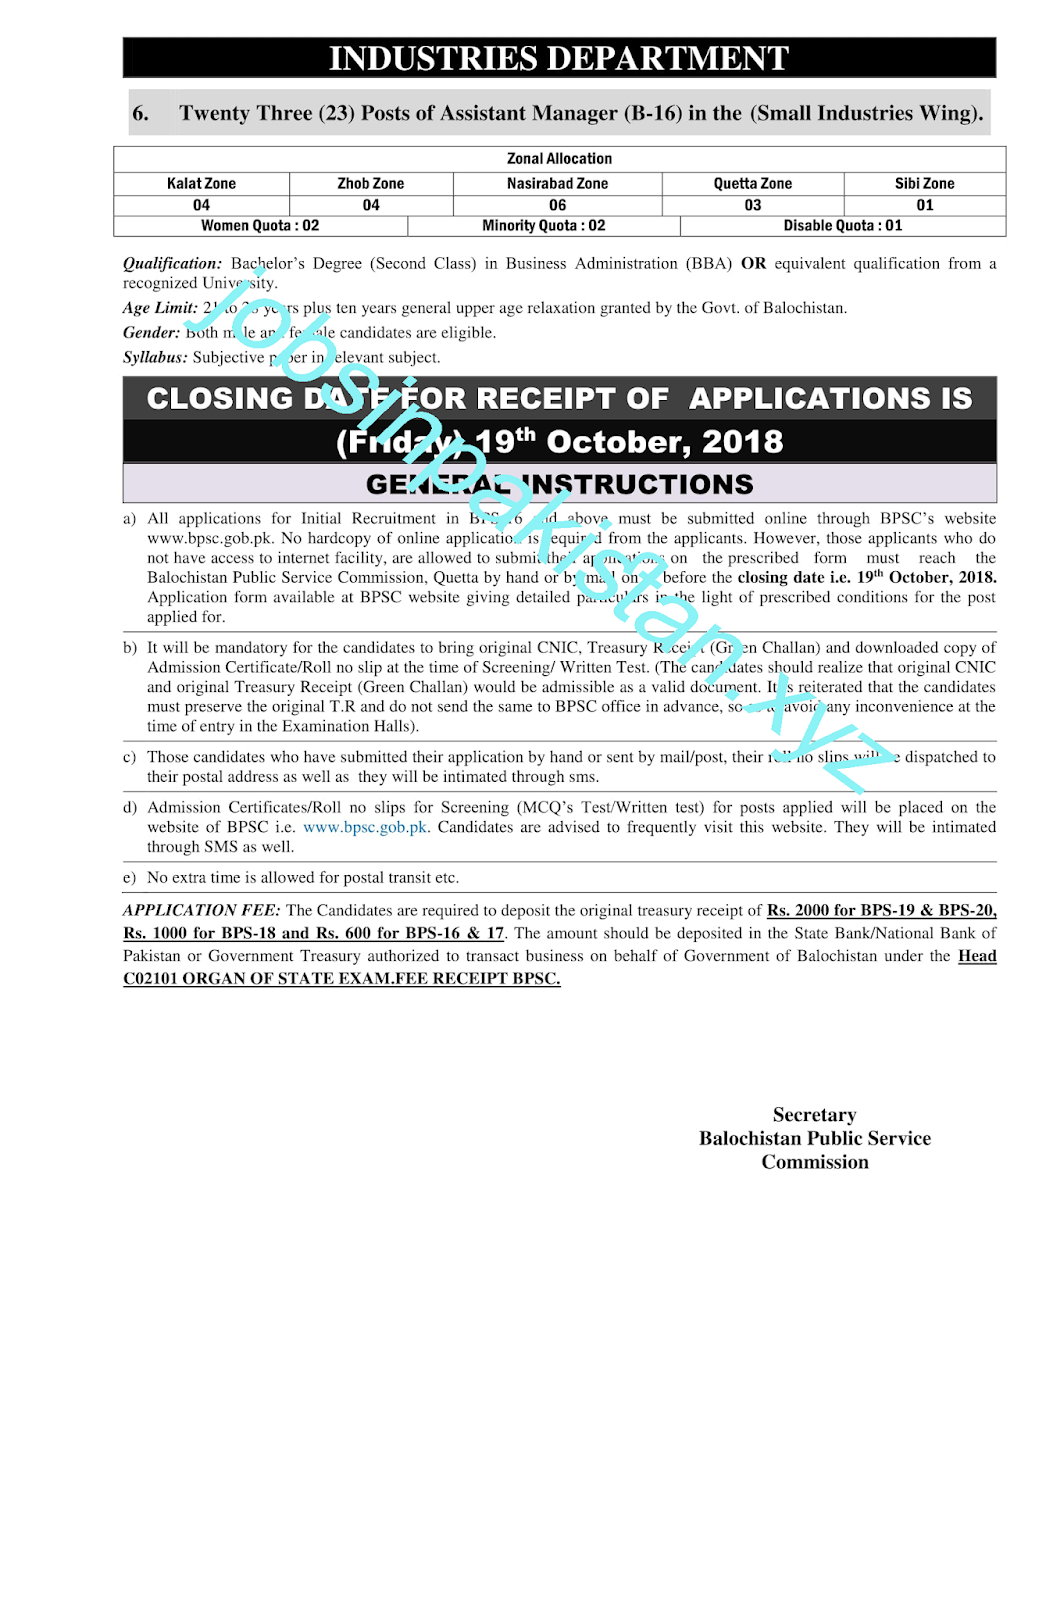 BPSC Advertisement No 10/2018 (Page No 3)